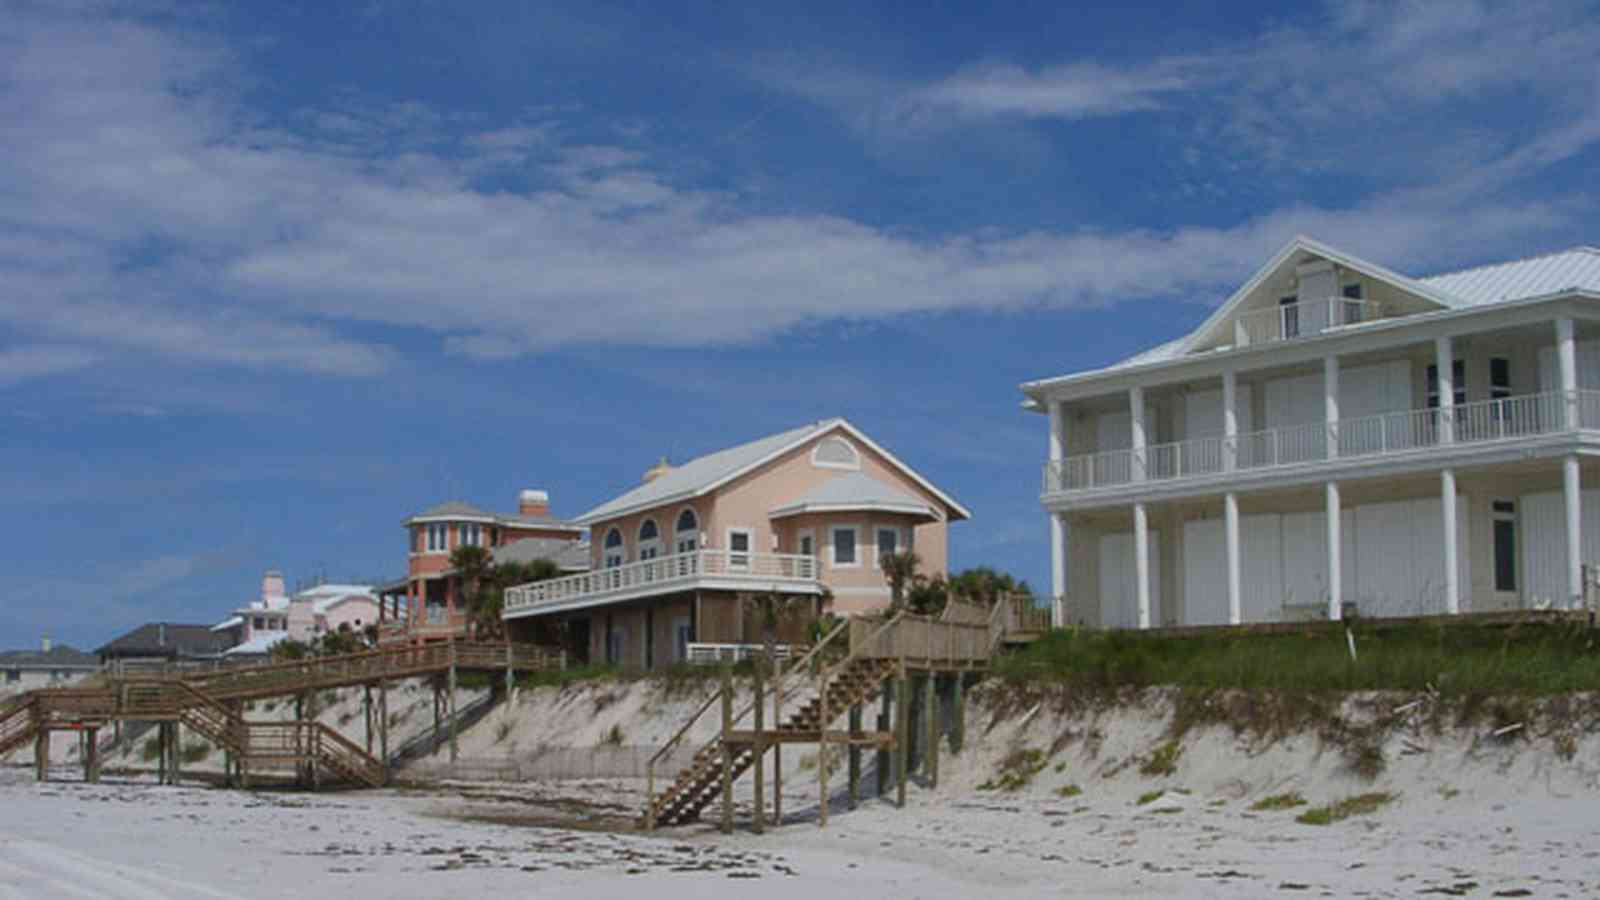 Pensacola-Beach:-Hermosa-St-Homes_06.jpg:  erosion, dune, sand, federal style architectyre